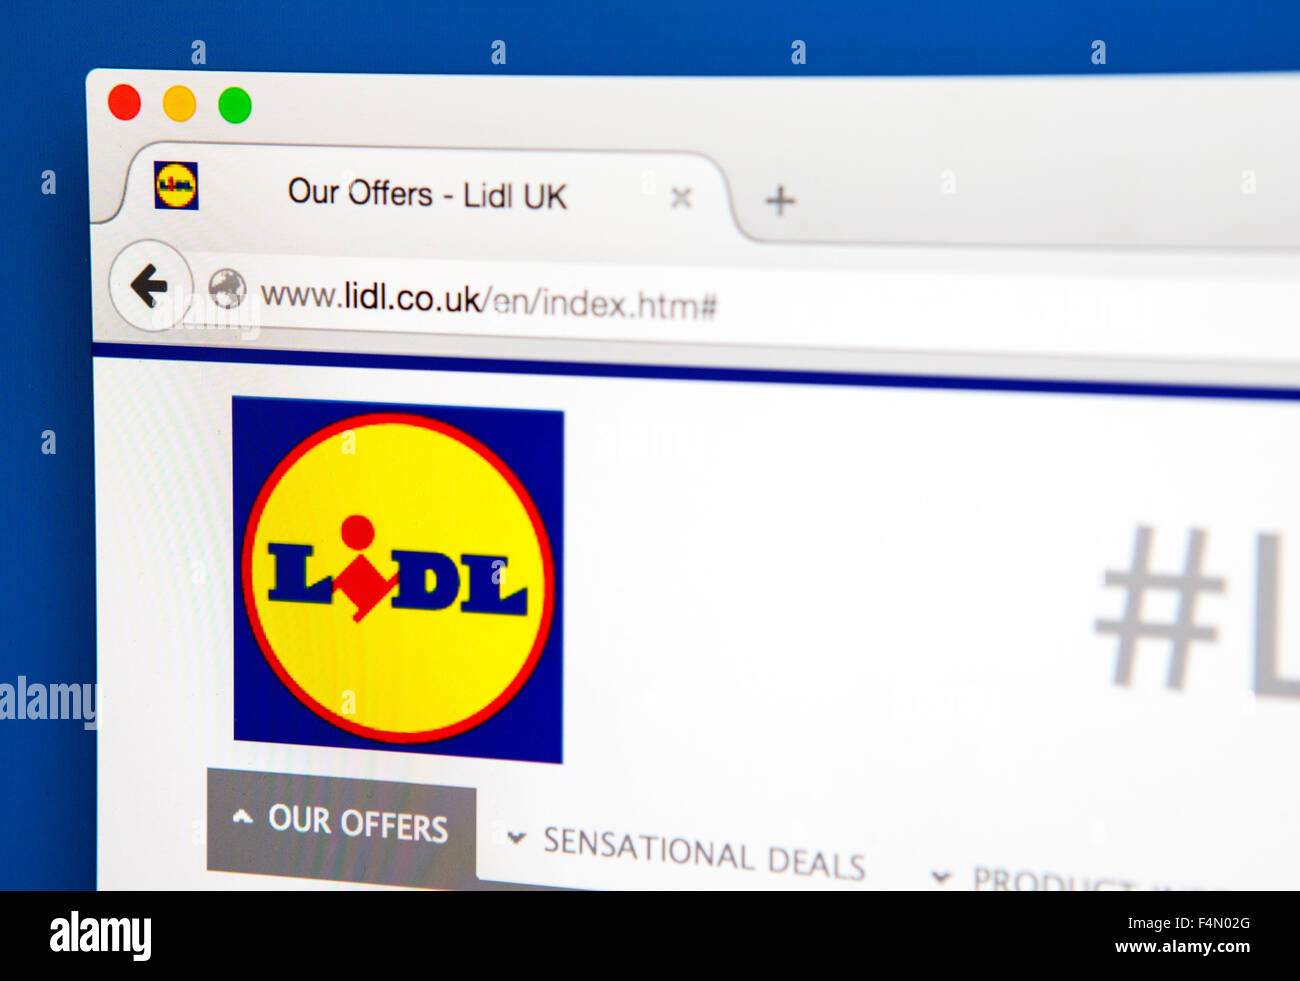 LONDON, UK - JUNE 19TH 2015: The homepage of the Lidl company website, on 19th June 2015. - Stock Image